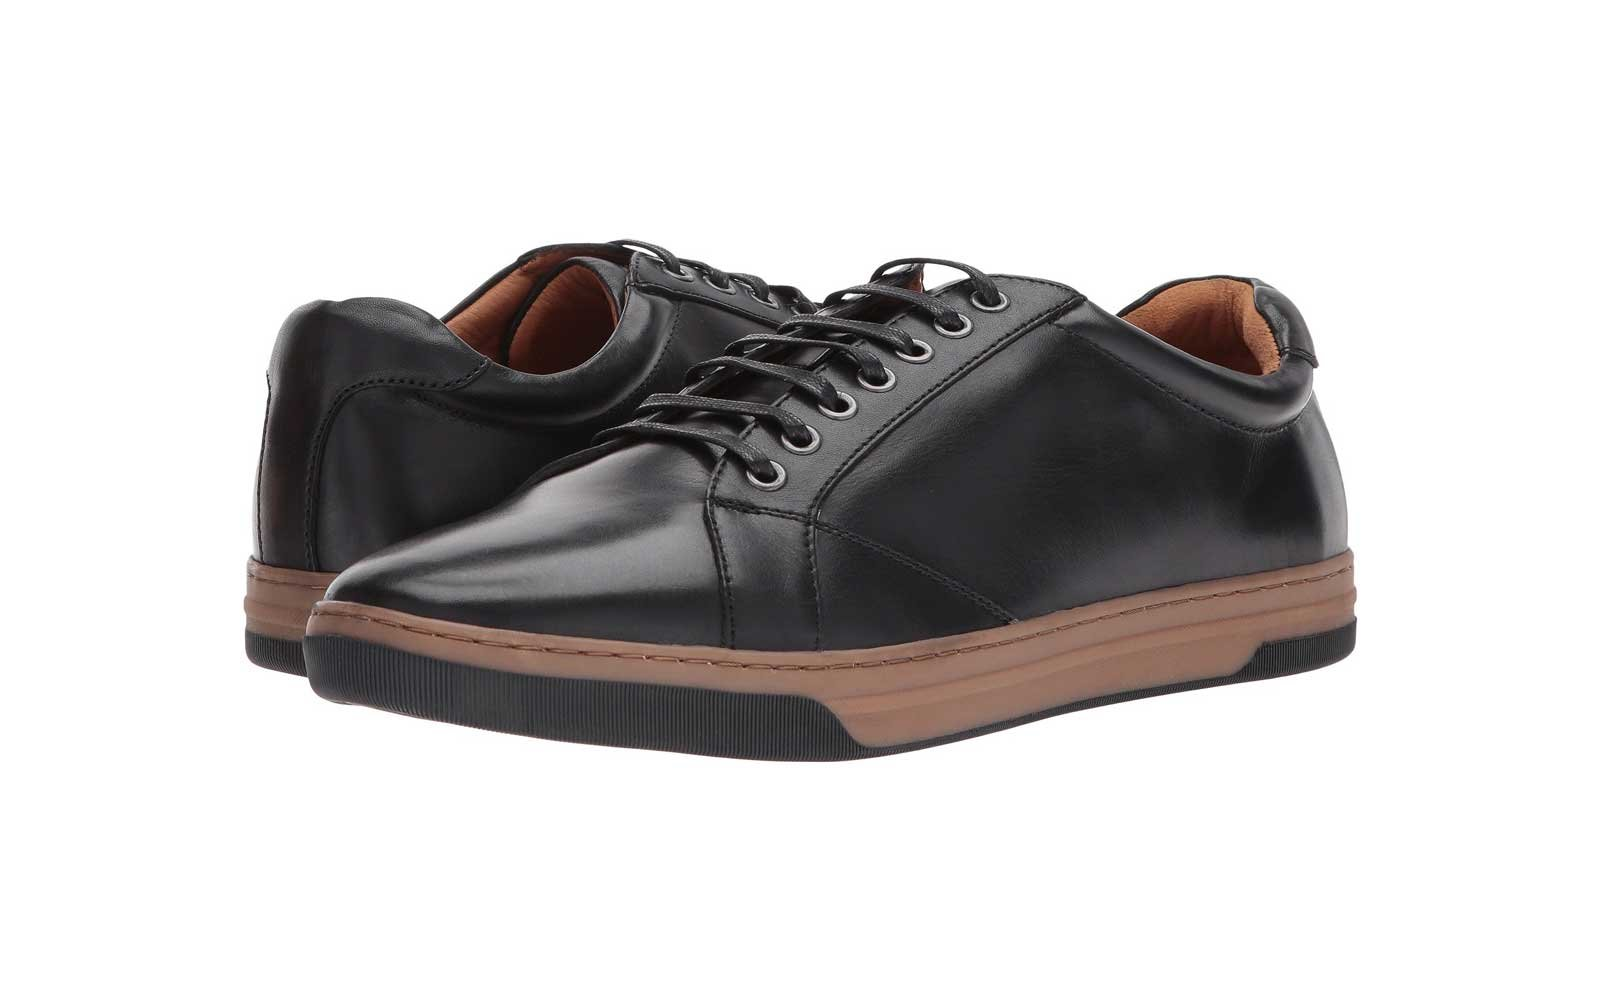 johnston and murphy dress tennis shoes